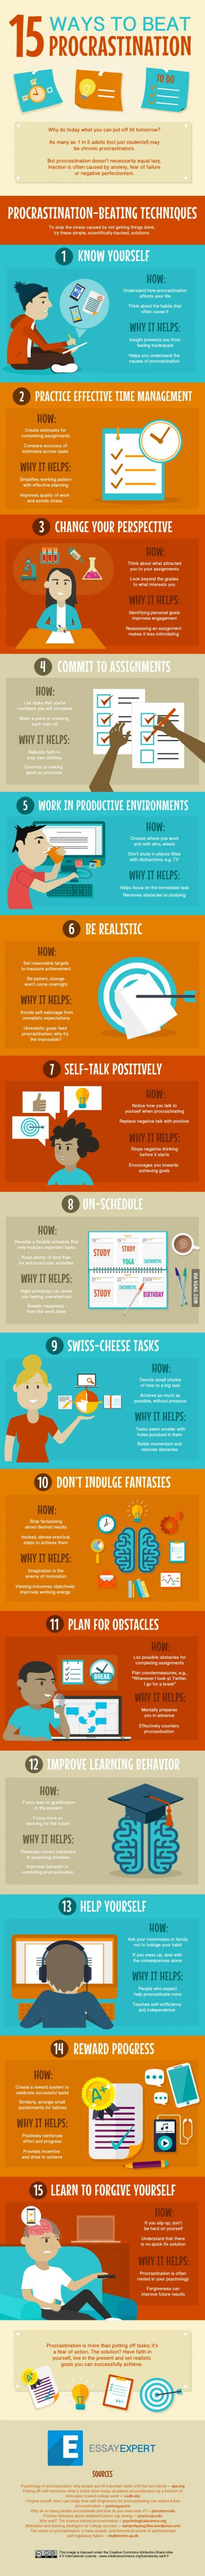 15 Ways to Overcome Procrastination [Infographic for the Students]